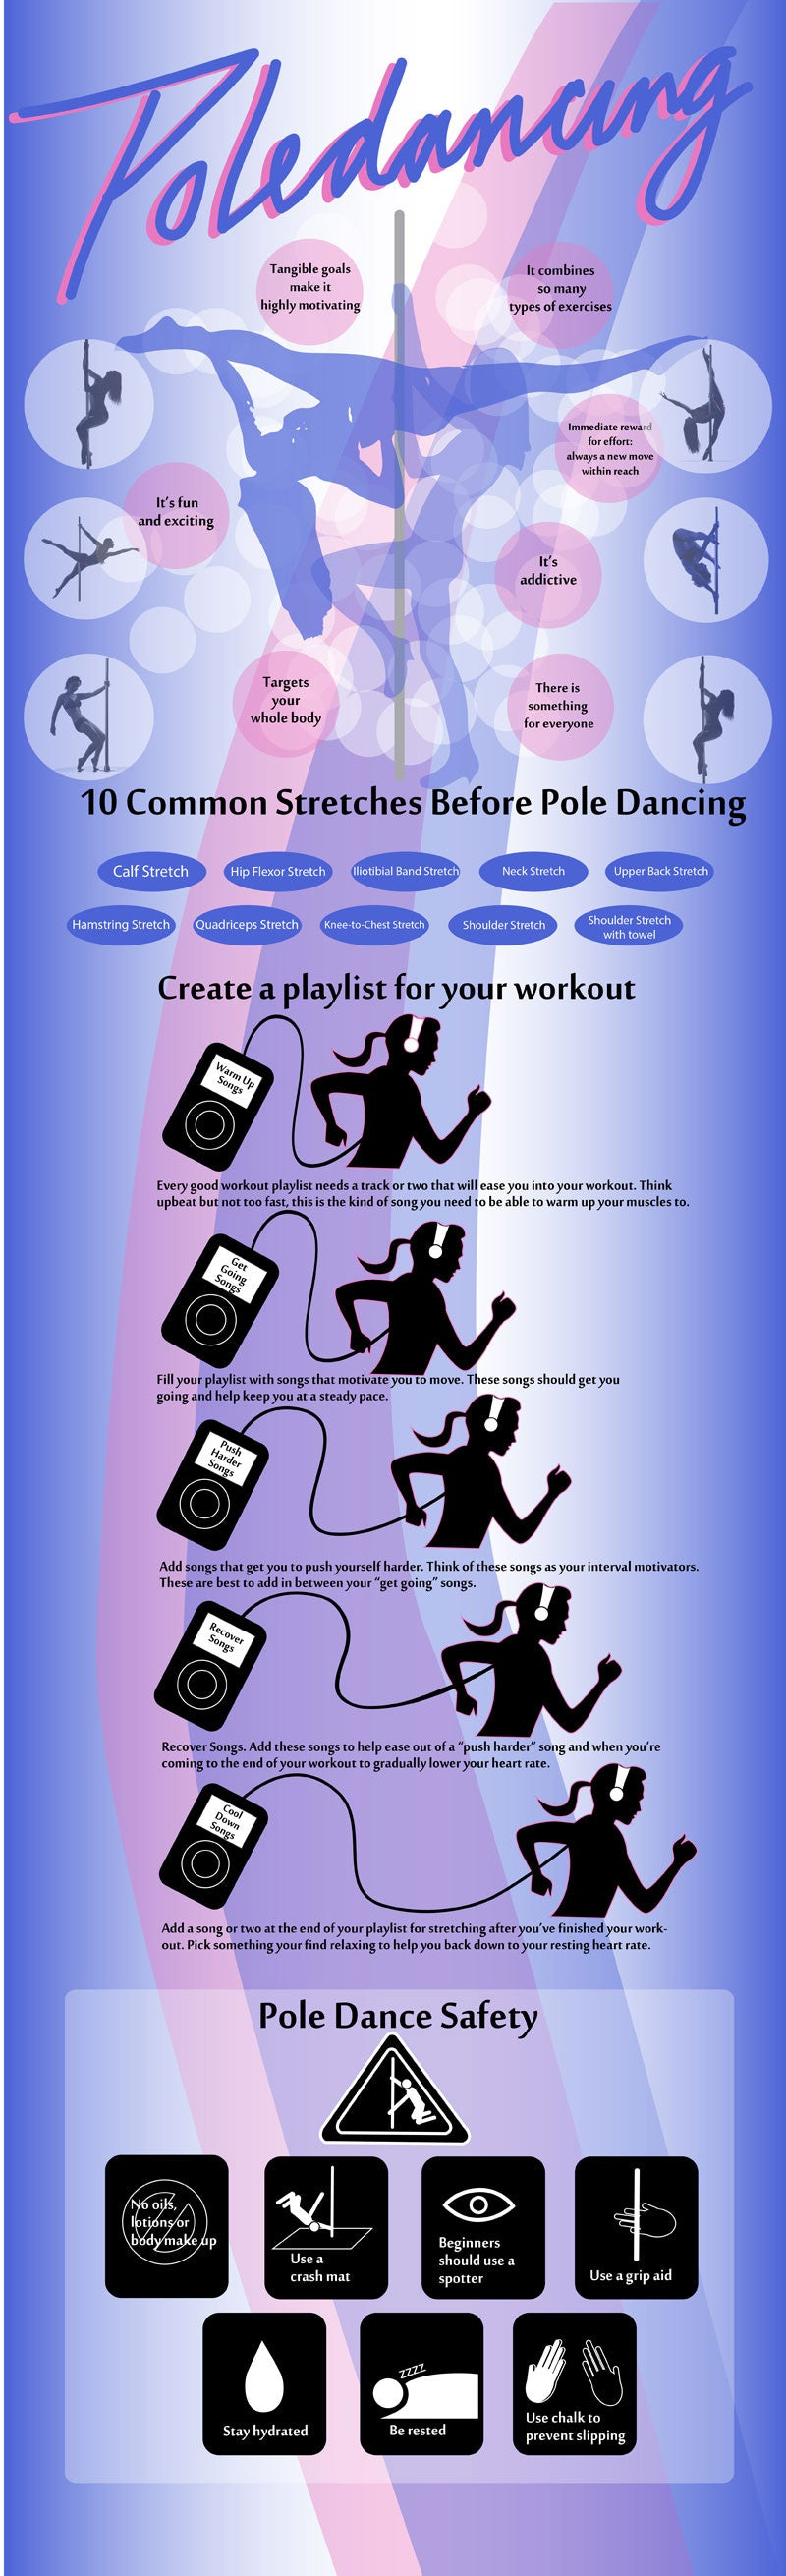 pole dancing info graphics